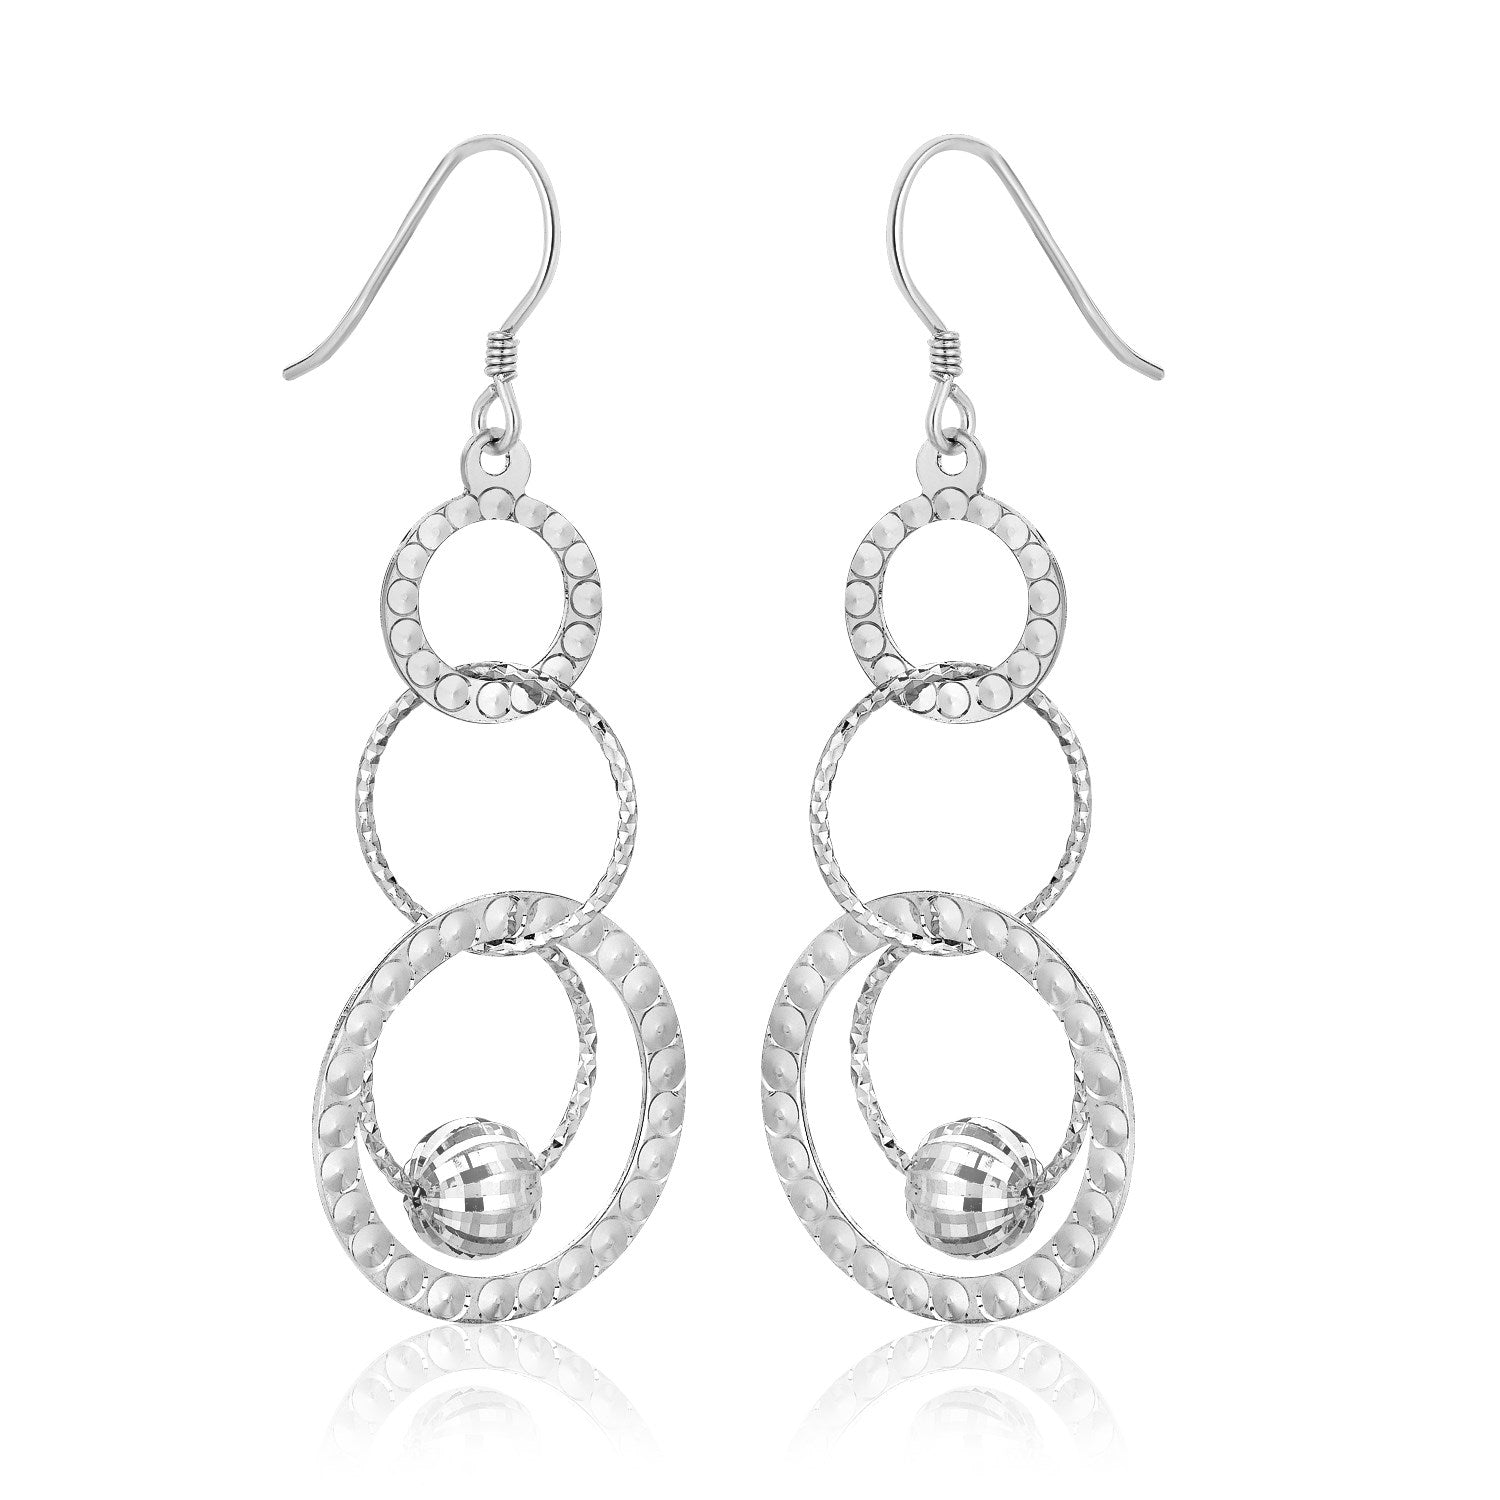 Sterling Silver Multi-Textured Open Rings and Ball Dangling Earrings